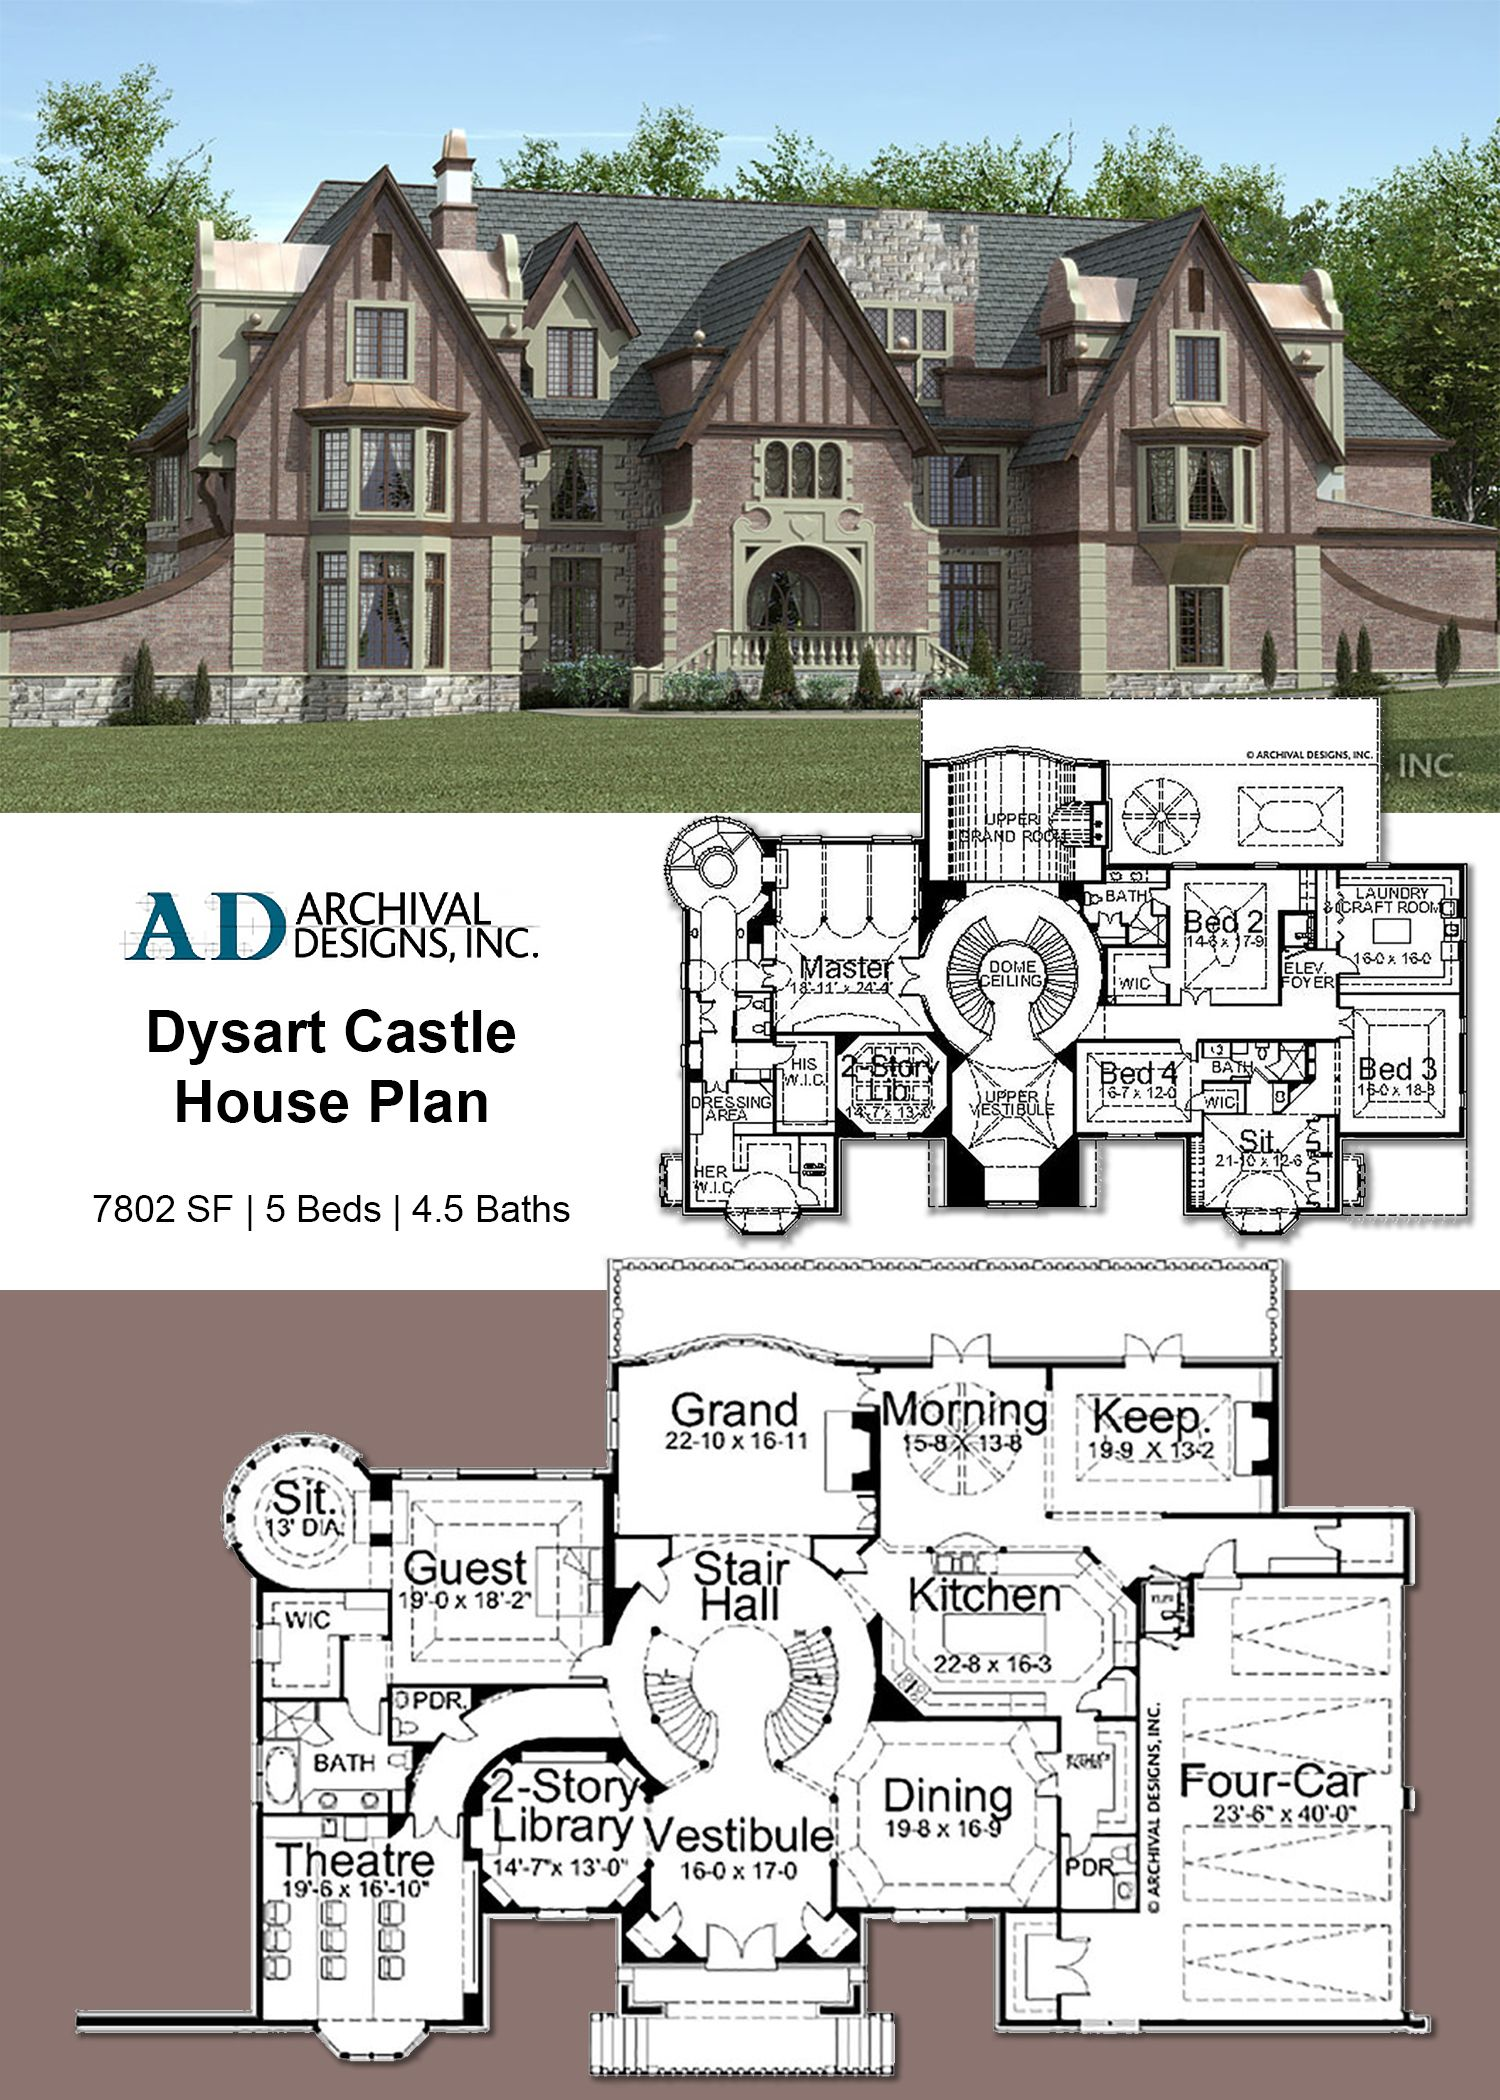 Dysart Castle House Plan Castle House Plans English Country House Plans Castle House